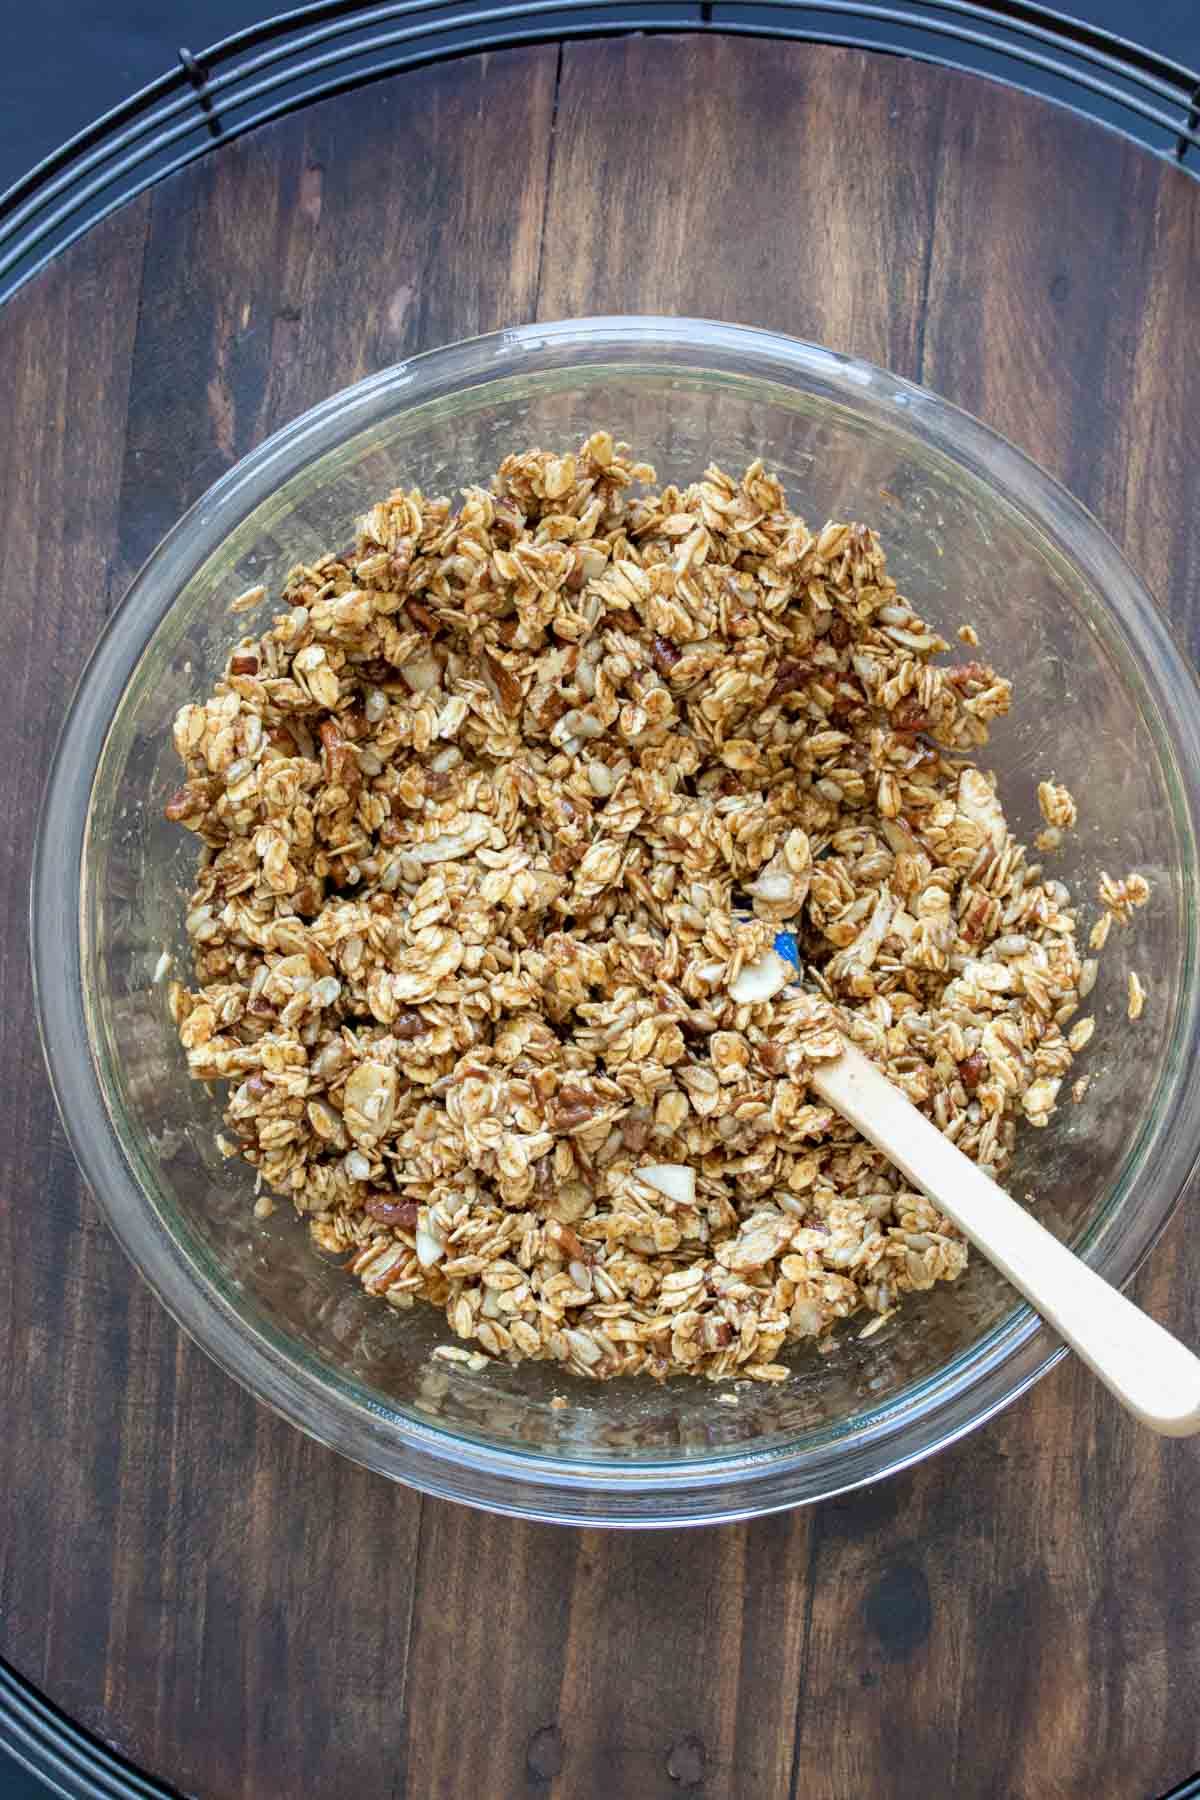 Spatula mixing ingredients for homemade granola in a glass bowl